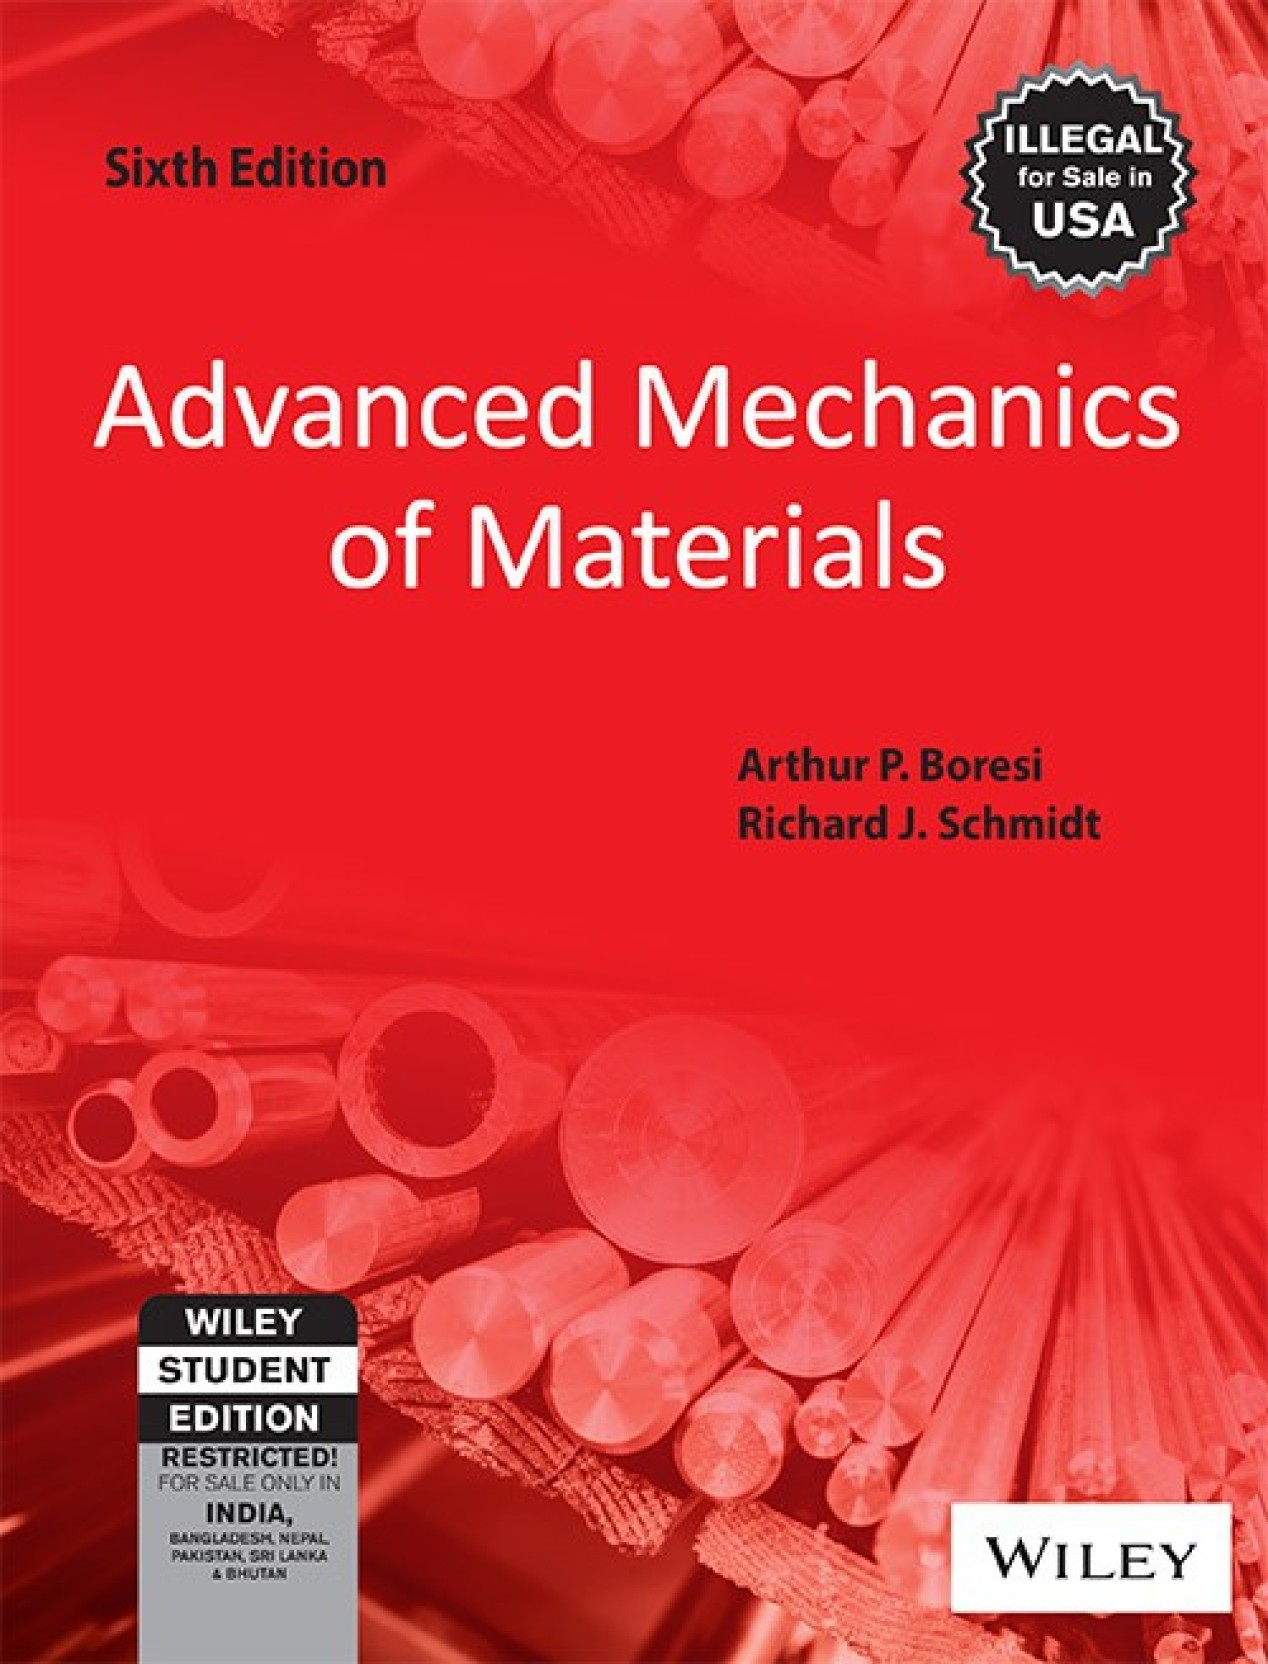 Advanced Mechanics Of Materials 6th Edition. ADD TO CART